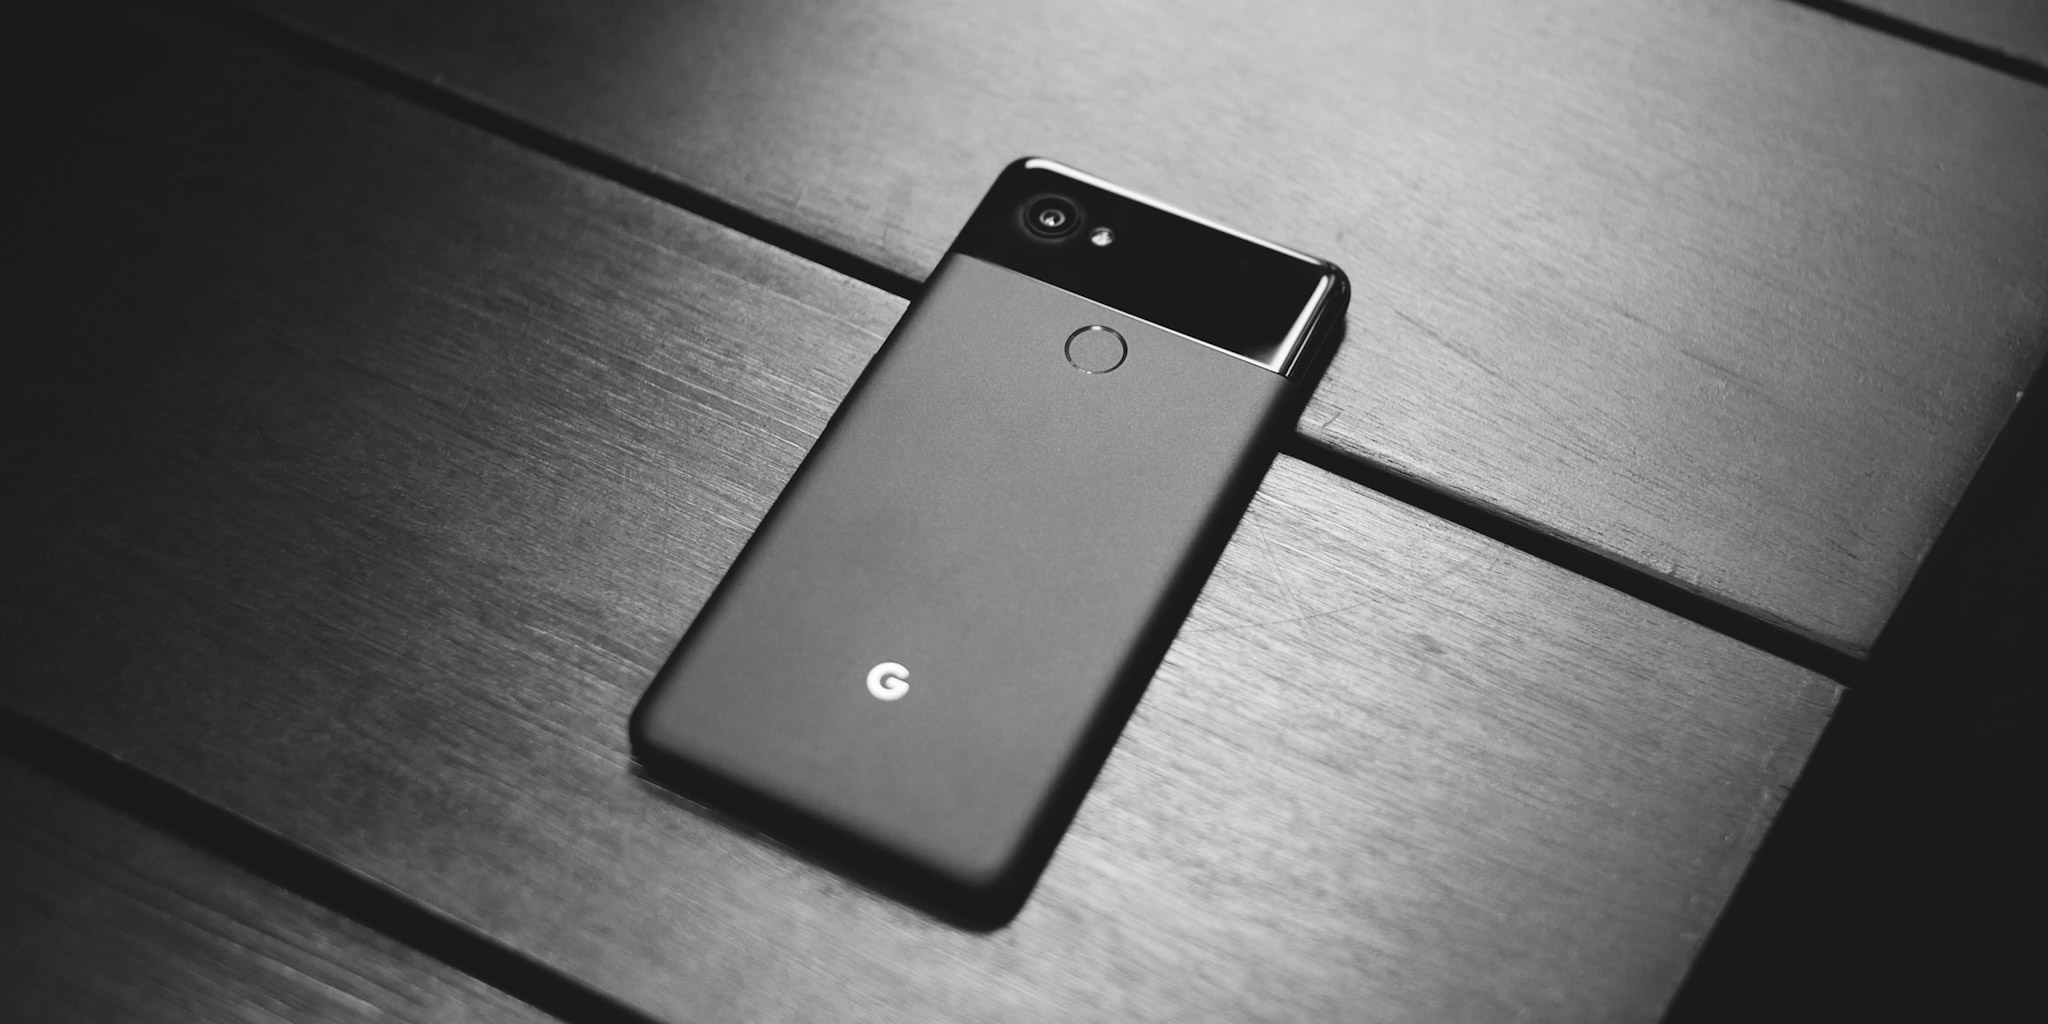 How to change media, alarm, and ring volume on Google Pixel 2 and 2 XL